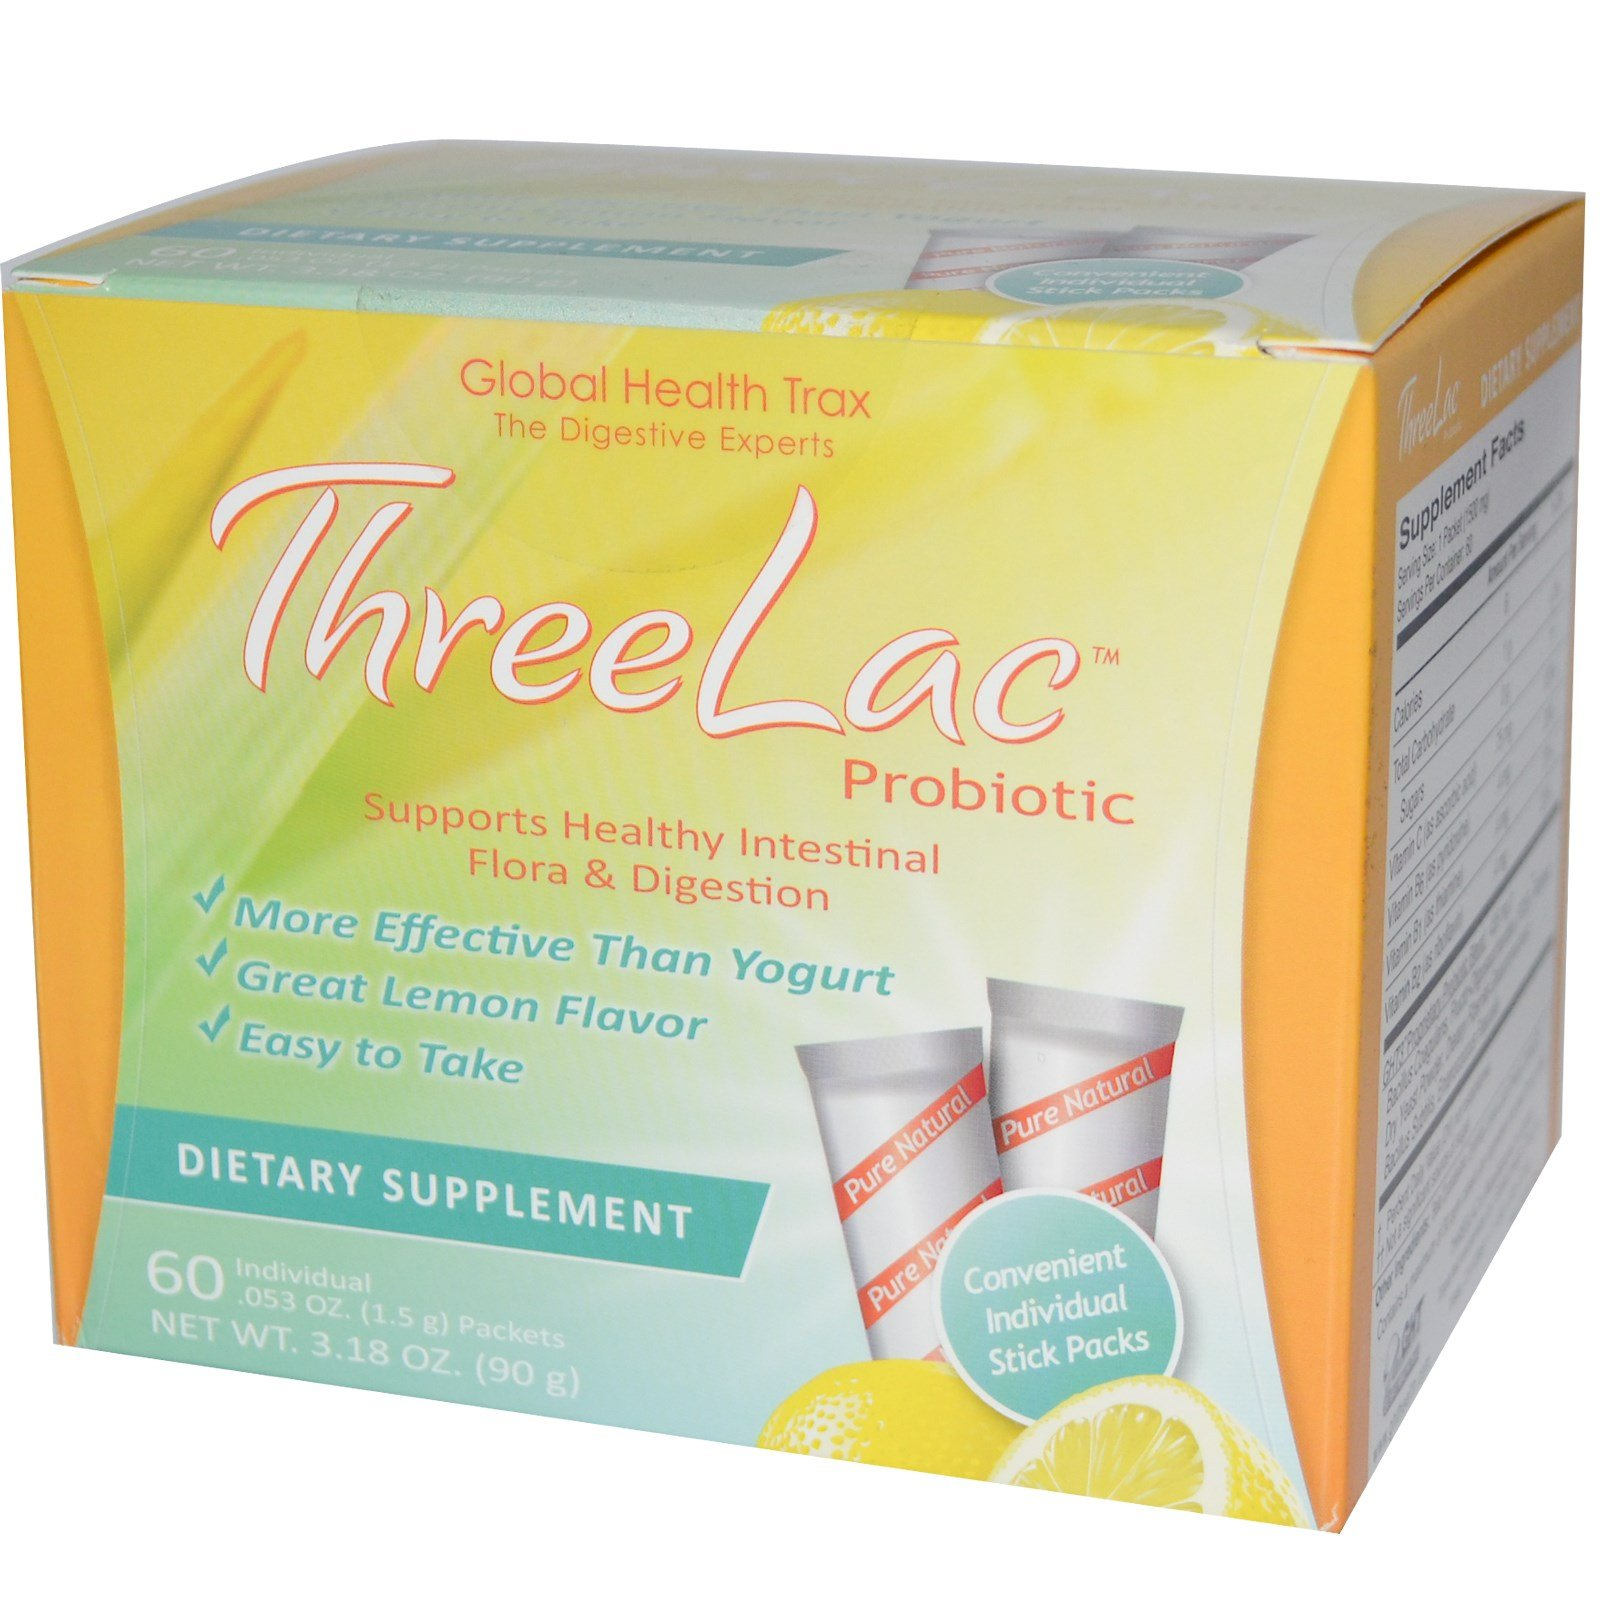 Global Health Trax, ThreeLac Probiotic, Lemon Flavor, 60 Packets, .053 oz (1.5 g) Each - 2pc